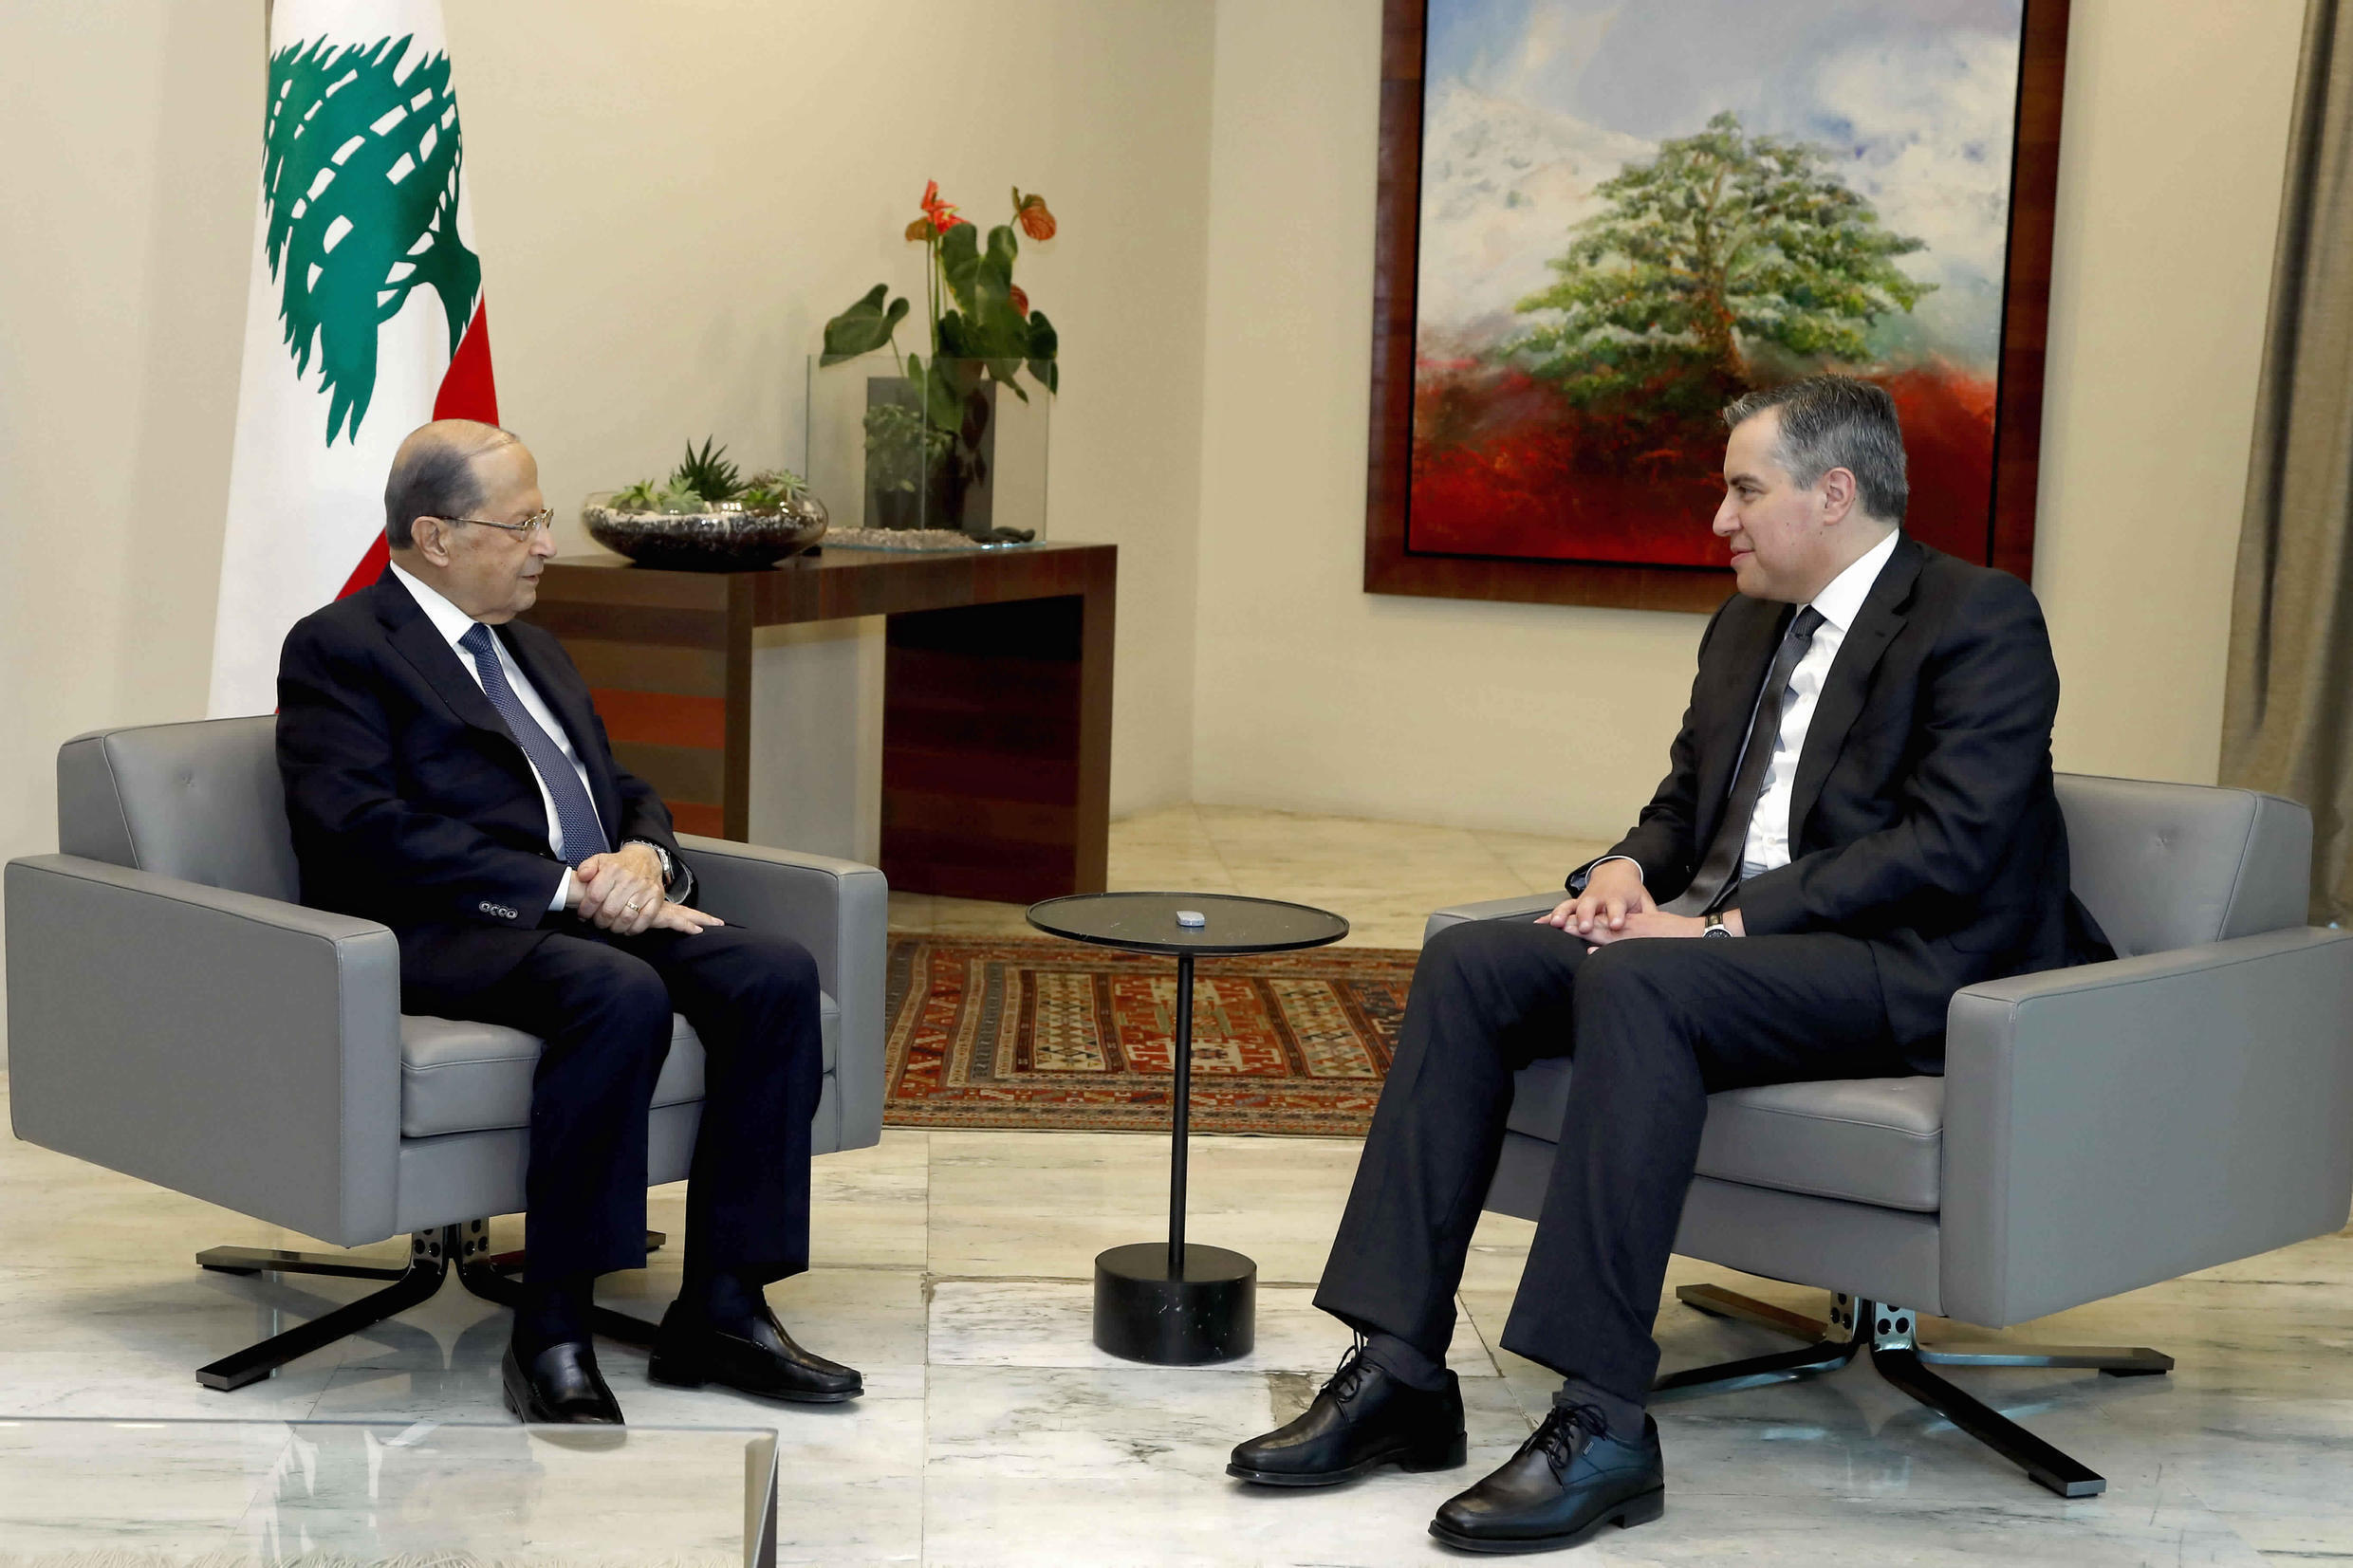 Lebanese President Michel Aoun, left, meets with Prime Minister-Designate Mustapha Adib, at the presidential palace, in Baabda, east of Beirut, during last-ditch talks to form a new government, 14 September 2020.